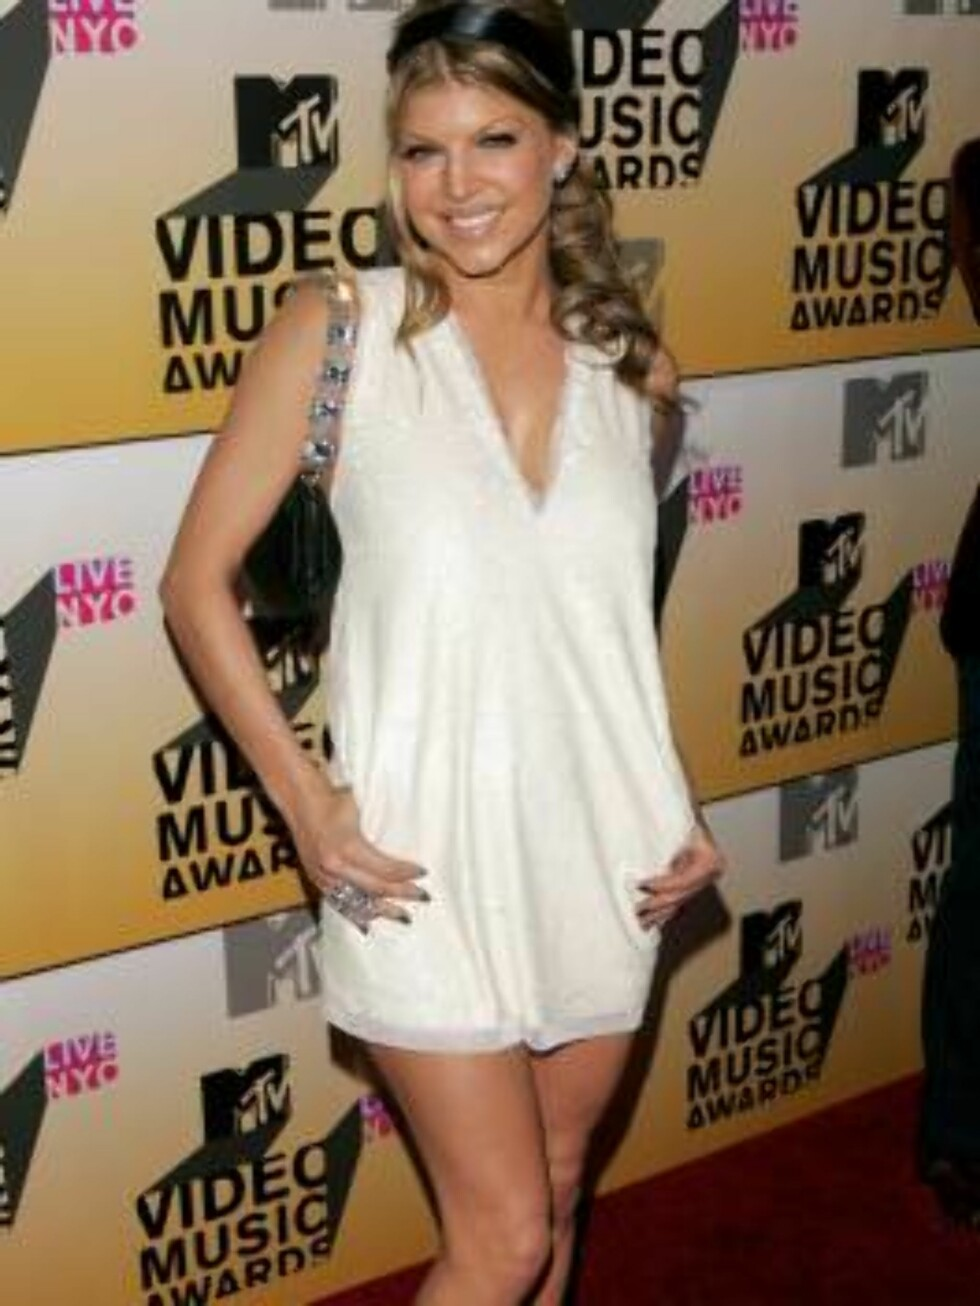 NEW YORK - AUGUST 31:  Singer Fergie attends the 2006 MTV Video Music Awards at Radio City Music Hall August 31, 2006 in New York City.  (Photo by Peter Kramer/Getty Images) *** Local Caption *** Fergie  * SPECIAL INSTRUCTIONS:  * *OBJECT NAME: 71747934CA Foto: All Over Press